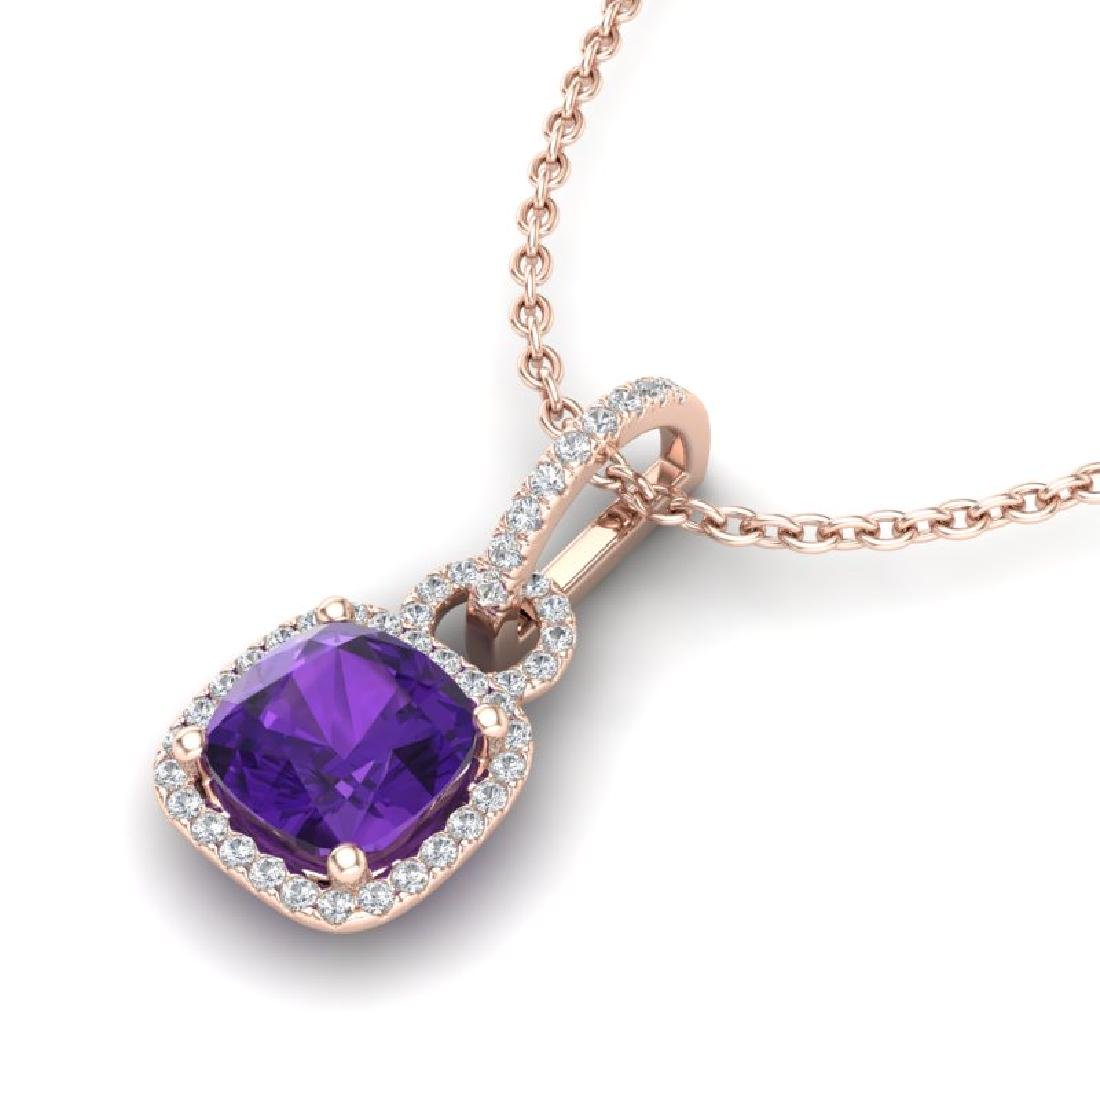 3.50 CTW Amethyst & Micro VS/SI Diamond Necklace 14K